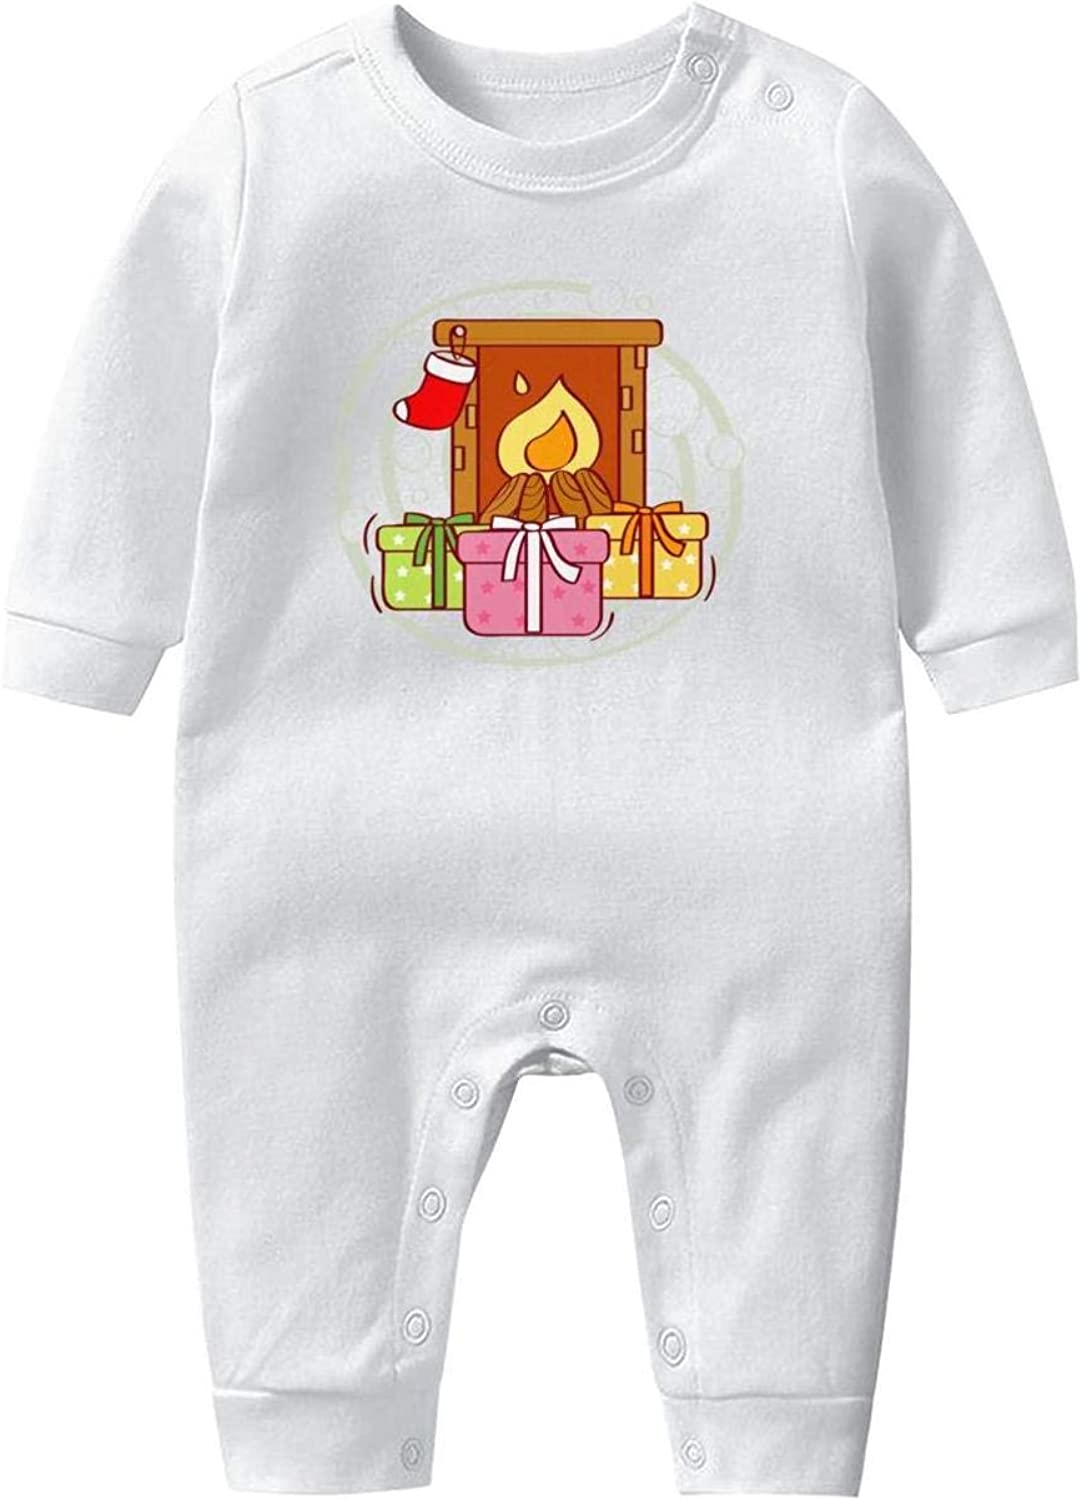 Box Stockings Baby Onesie Organic Cotton Novelty Soft Newborn Long Sleeve Romper